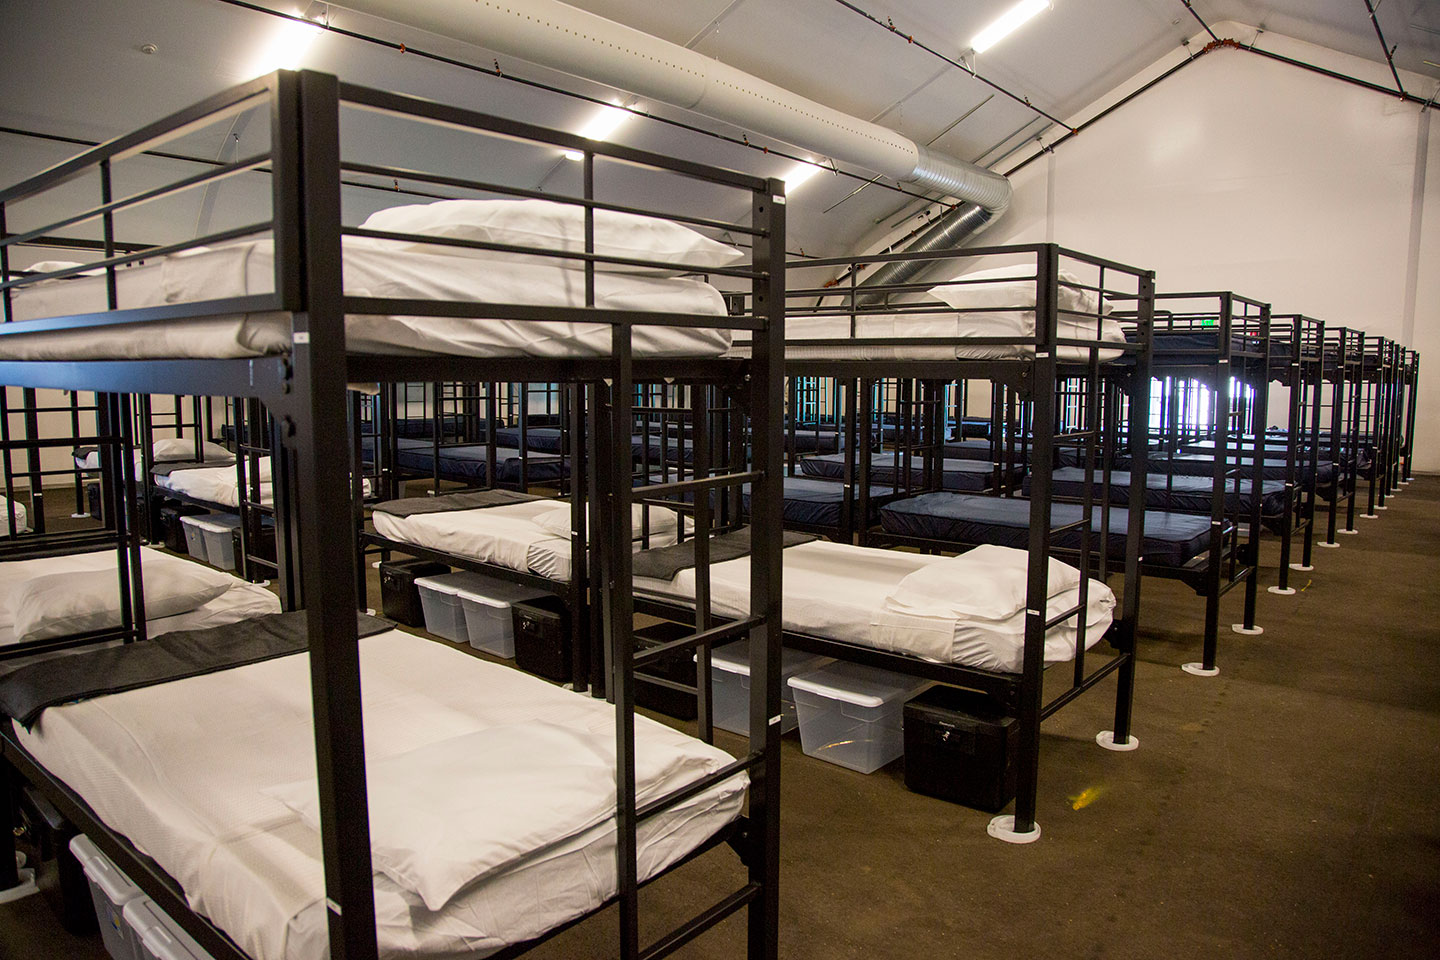 San Diego Shelters - 16th Street and Newton Avenue - operated by Alpha Project. Provides up to 325 beds for single adults. (619) 542-18772801 ½ Sports Arena Boulevard - operated by Veterans Village of San Diego. Provides up to 200 beds for Veterans. (619) 393-200014th and Commercial Street (8am-4pm) - operated by Father Joe's Villages. Provides up to 150 beds for families and single women. (619) 233-8500